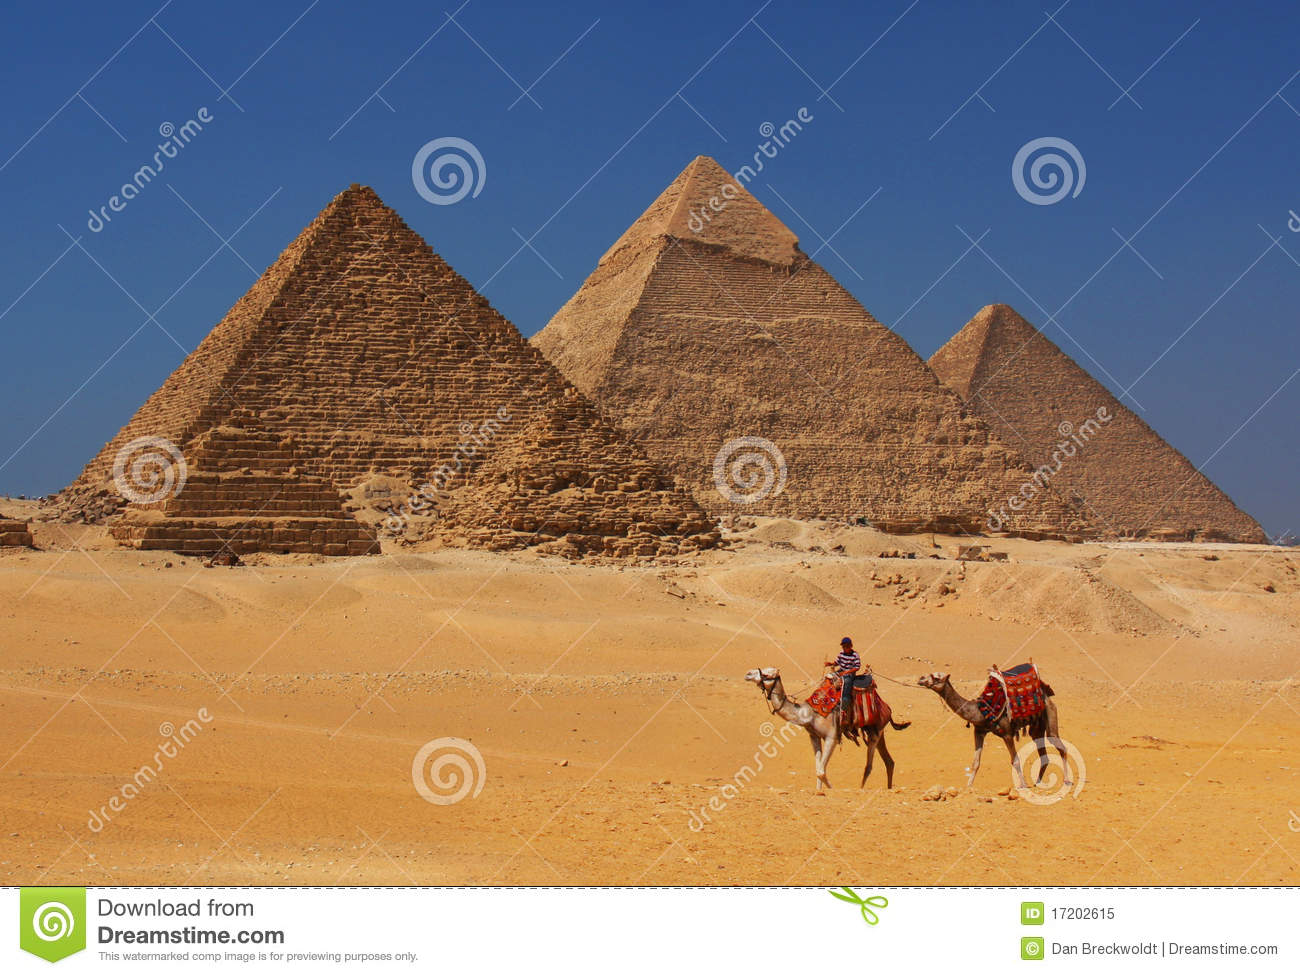 The Pyramids in Egypt